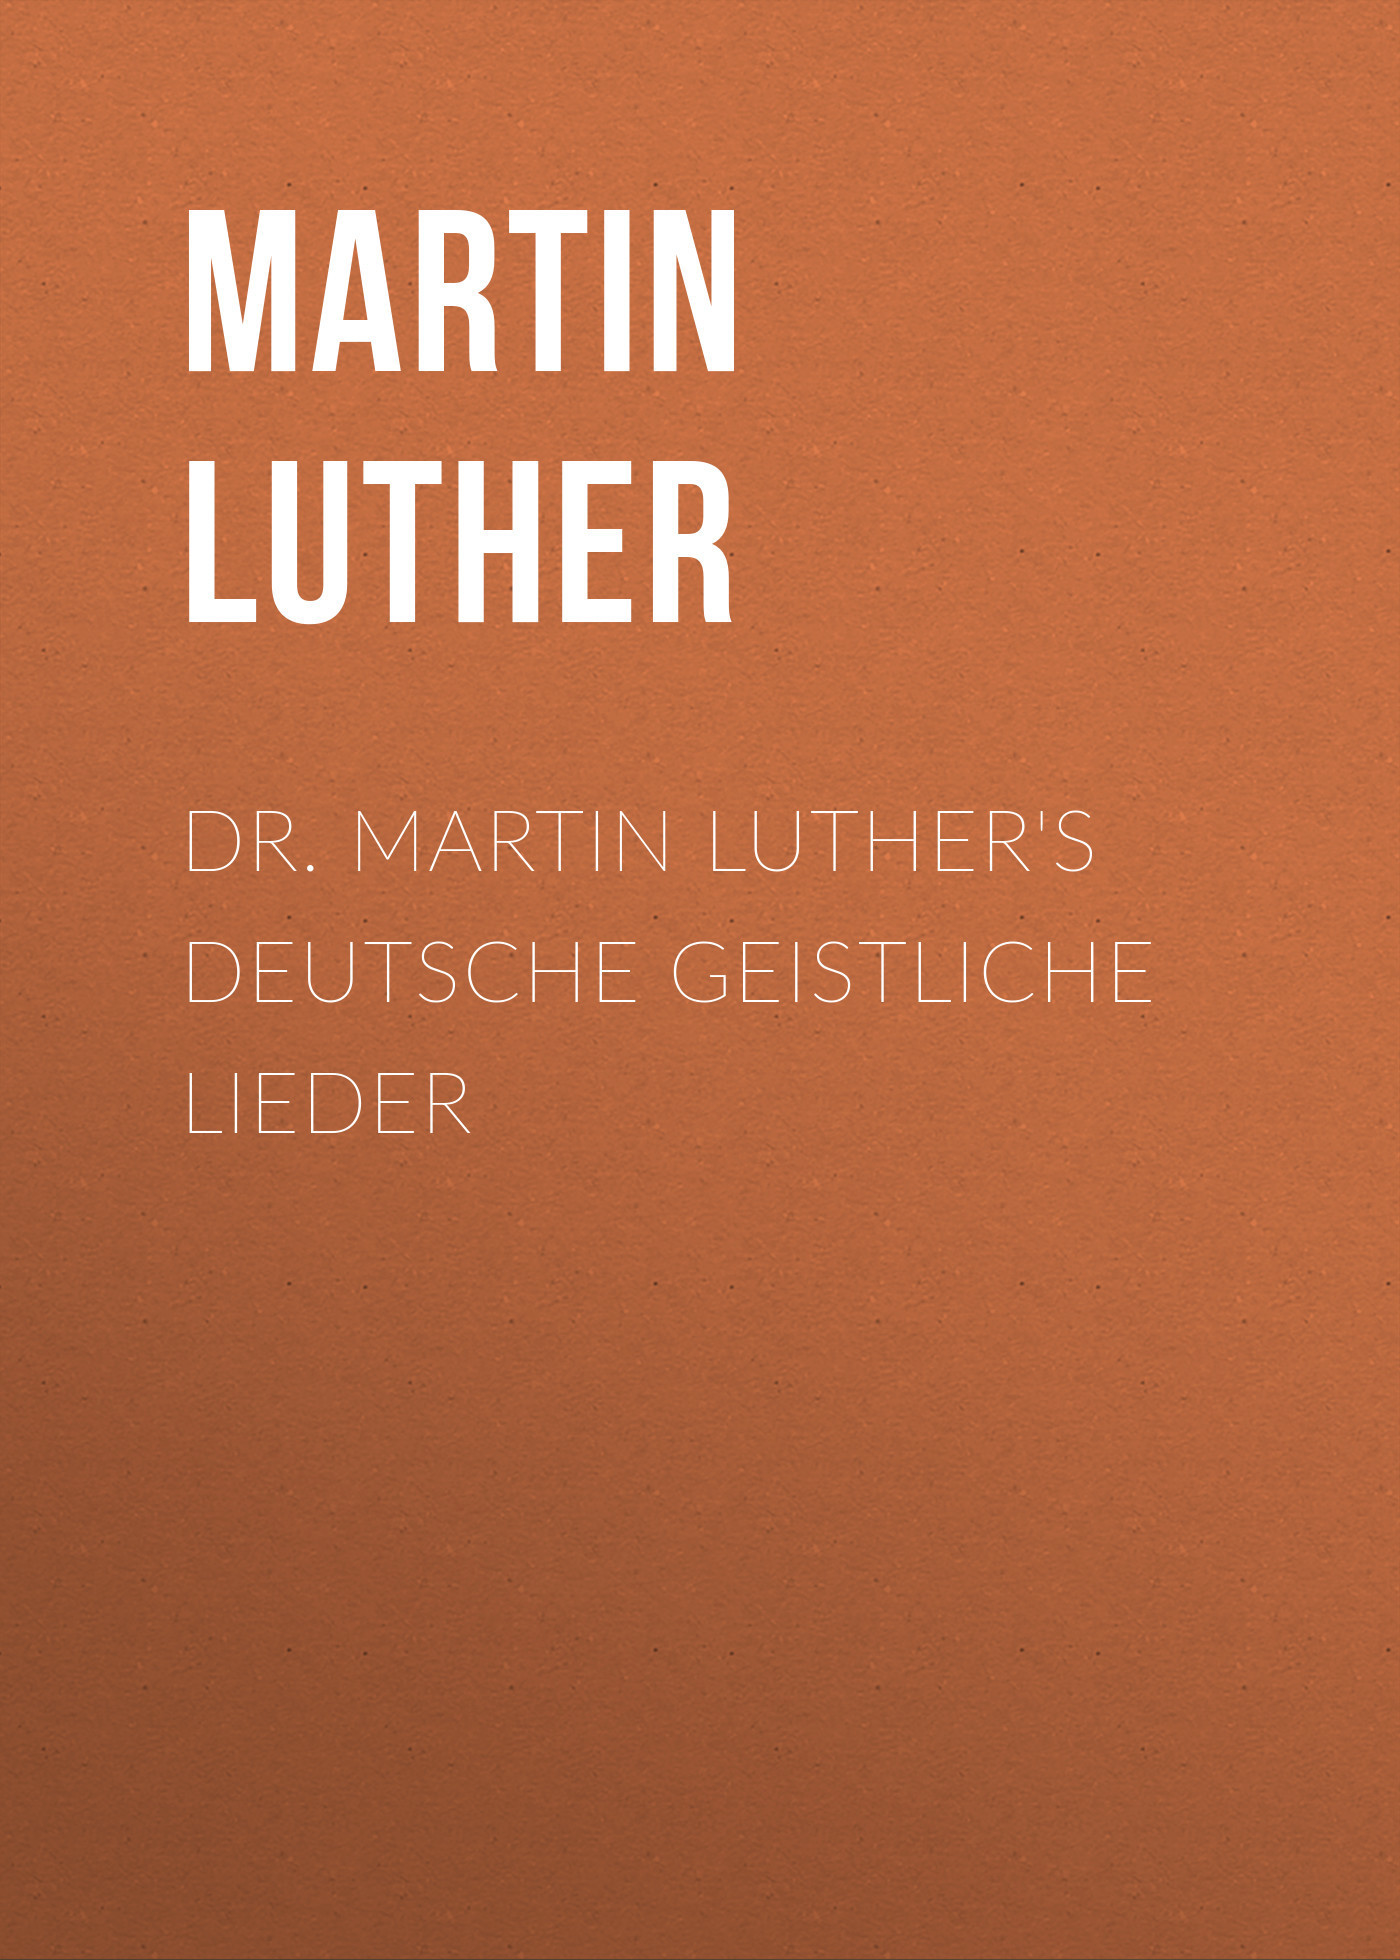 Martin Luther Dr. Martin Luther's Deutsche Geistliche Lieder кеды martin pescatore martin pescatore ma108awtan77